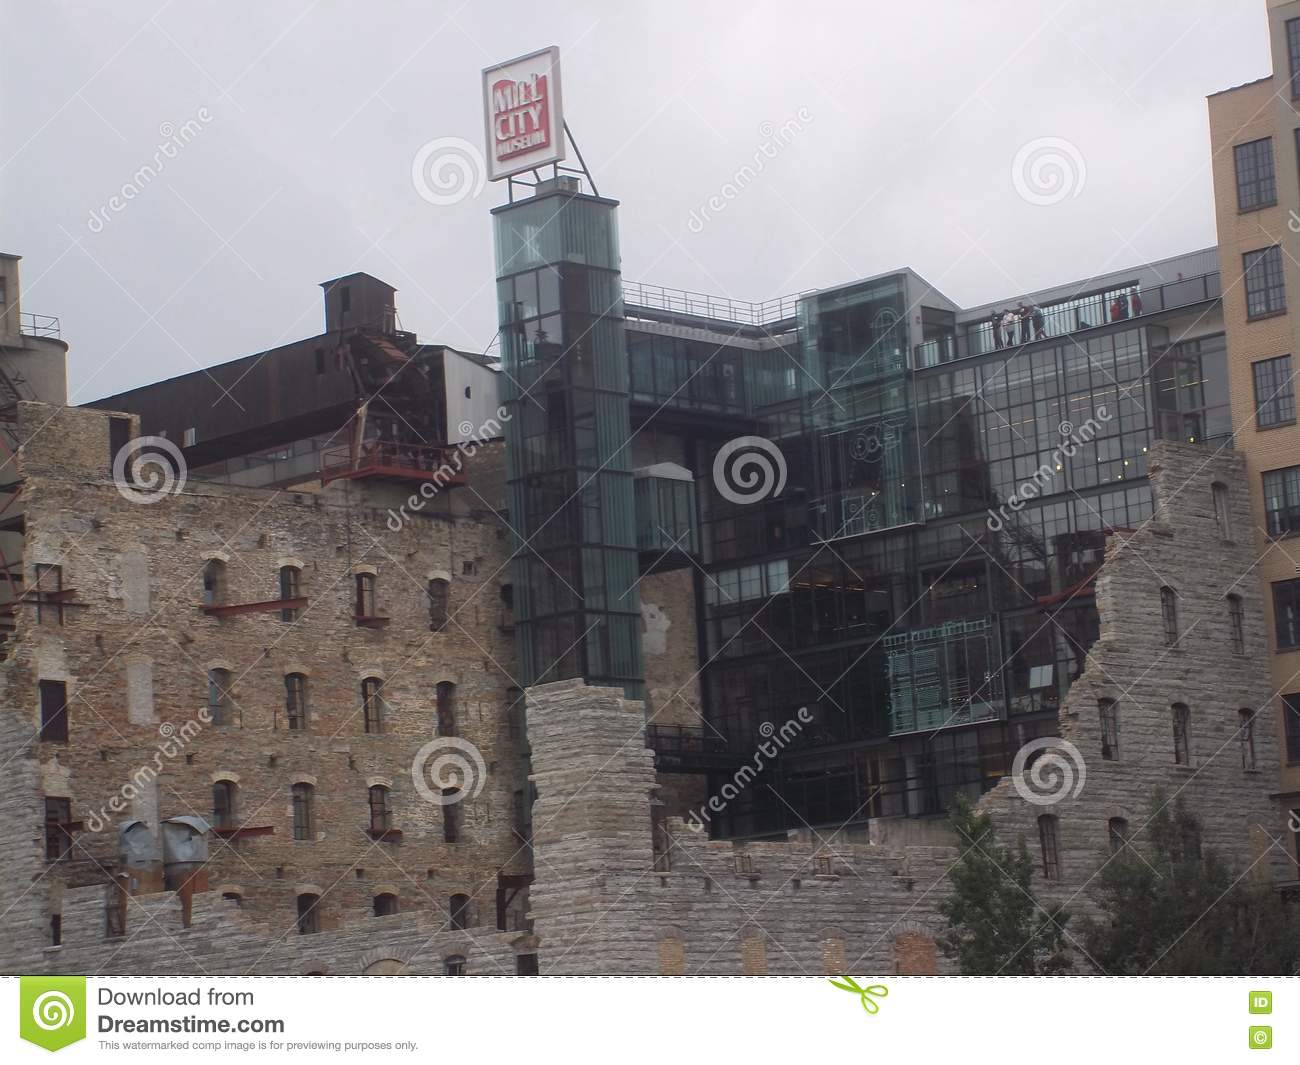 Mill City Museum and Ruins in Minneapolis